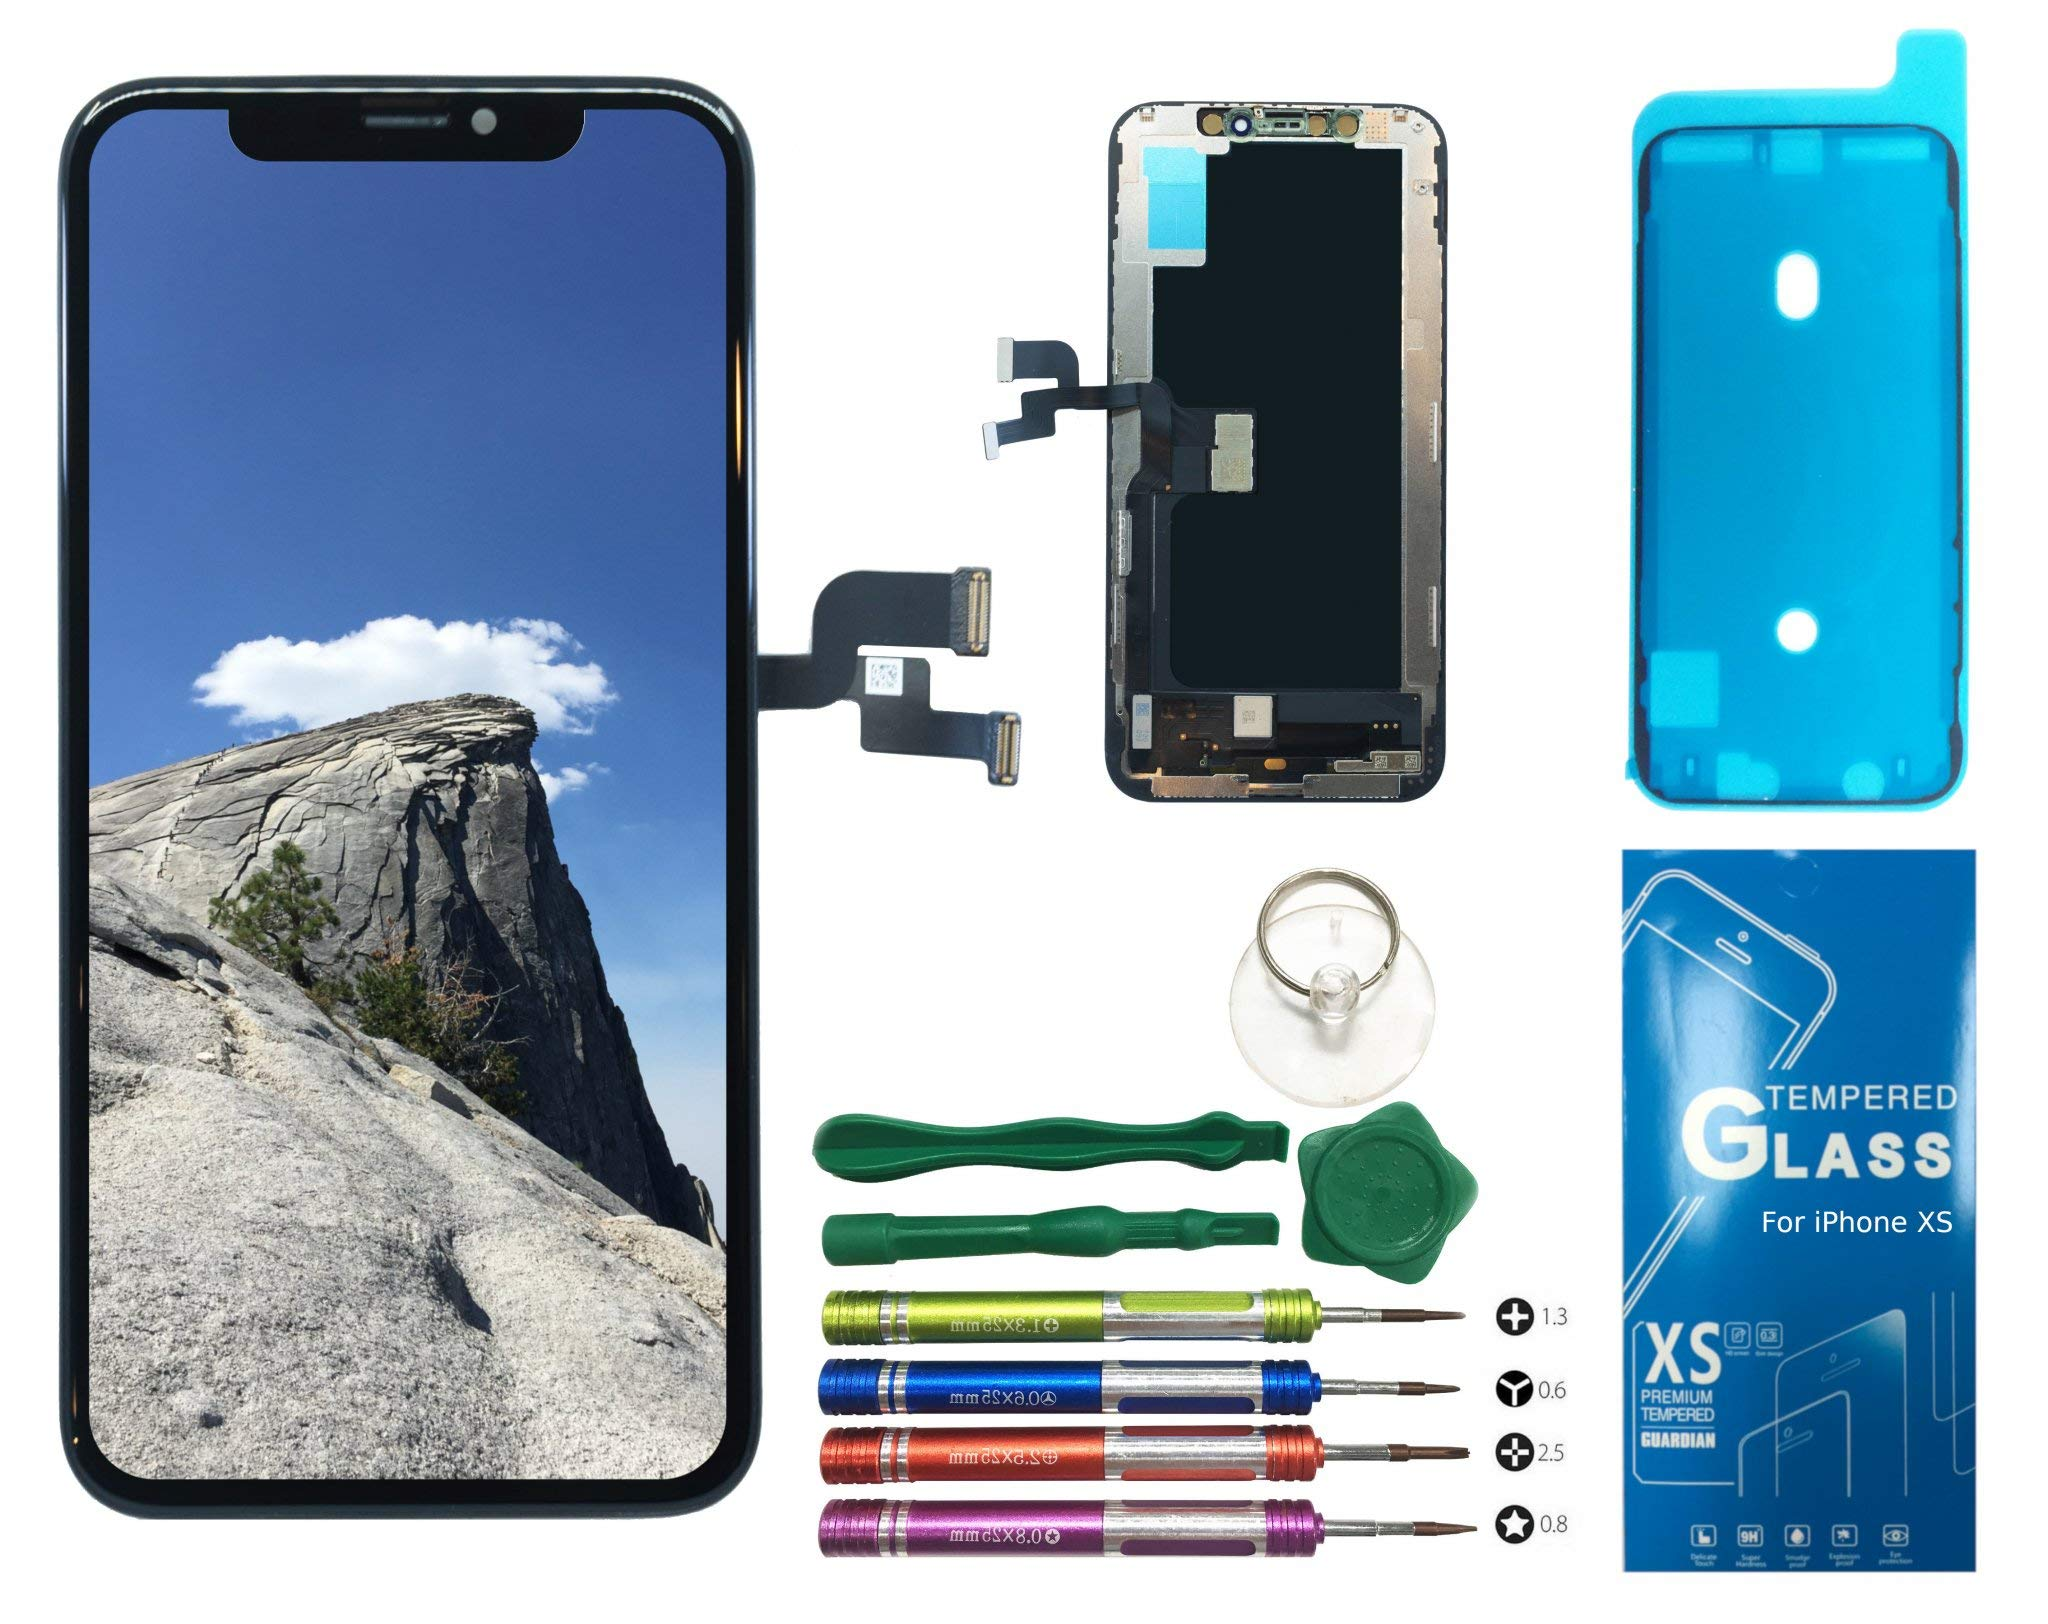 UNUS OLED Digitizer Replacement Kit for iPhone Xs, Comes with Tempered Glass Screen Protector and Free Tool Kits by UNUS